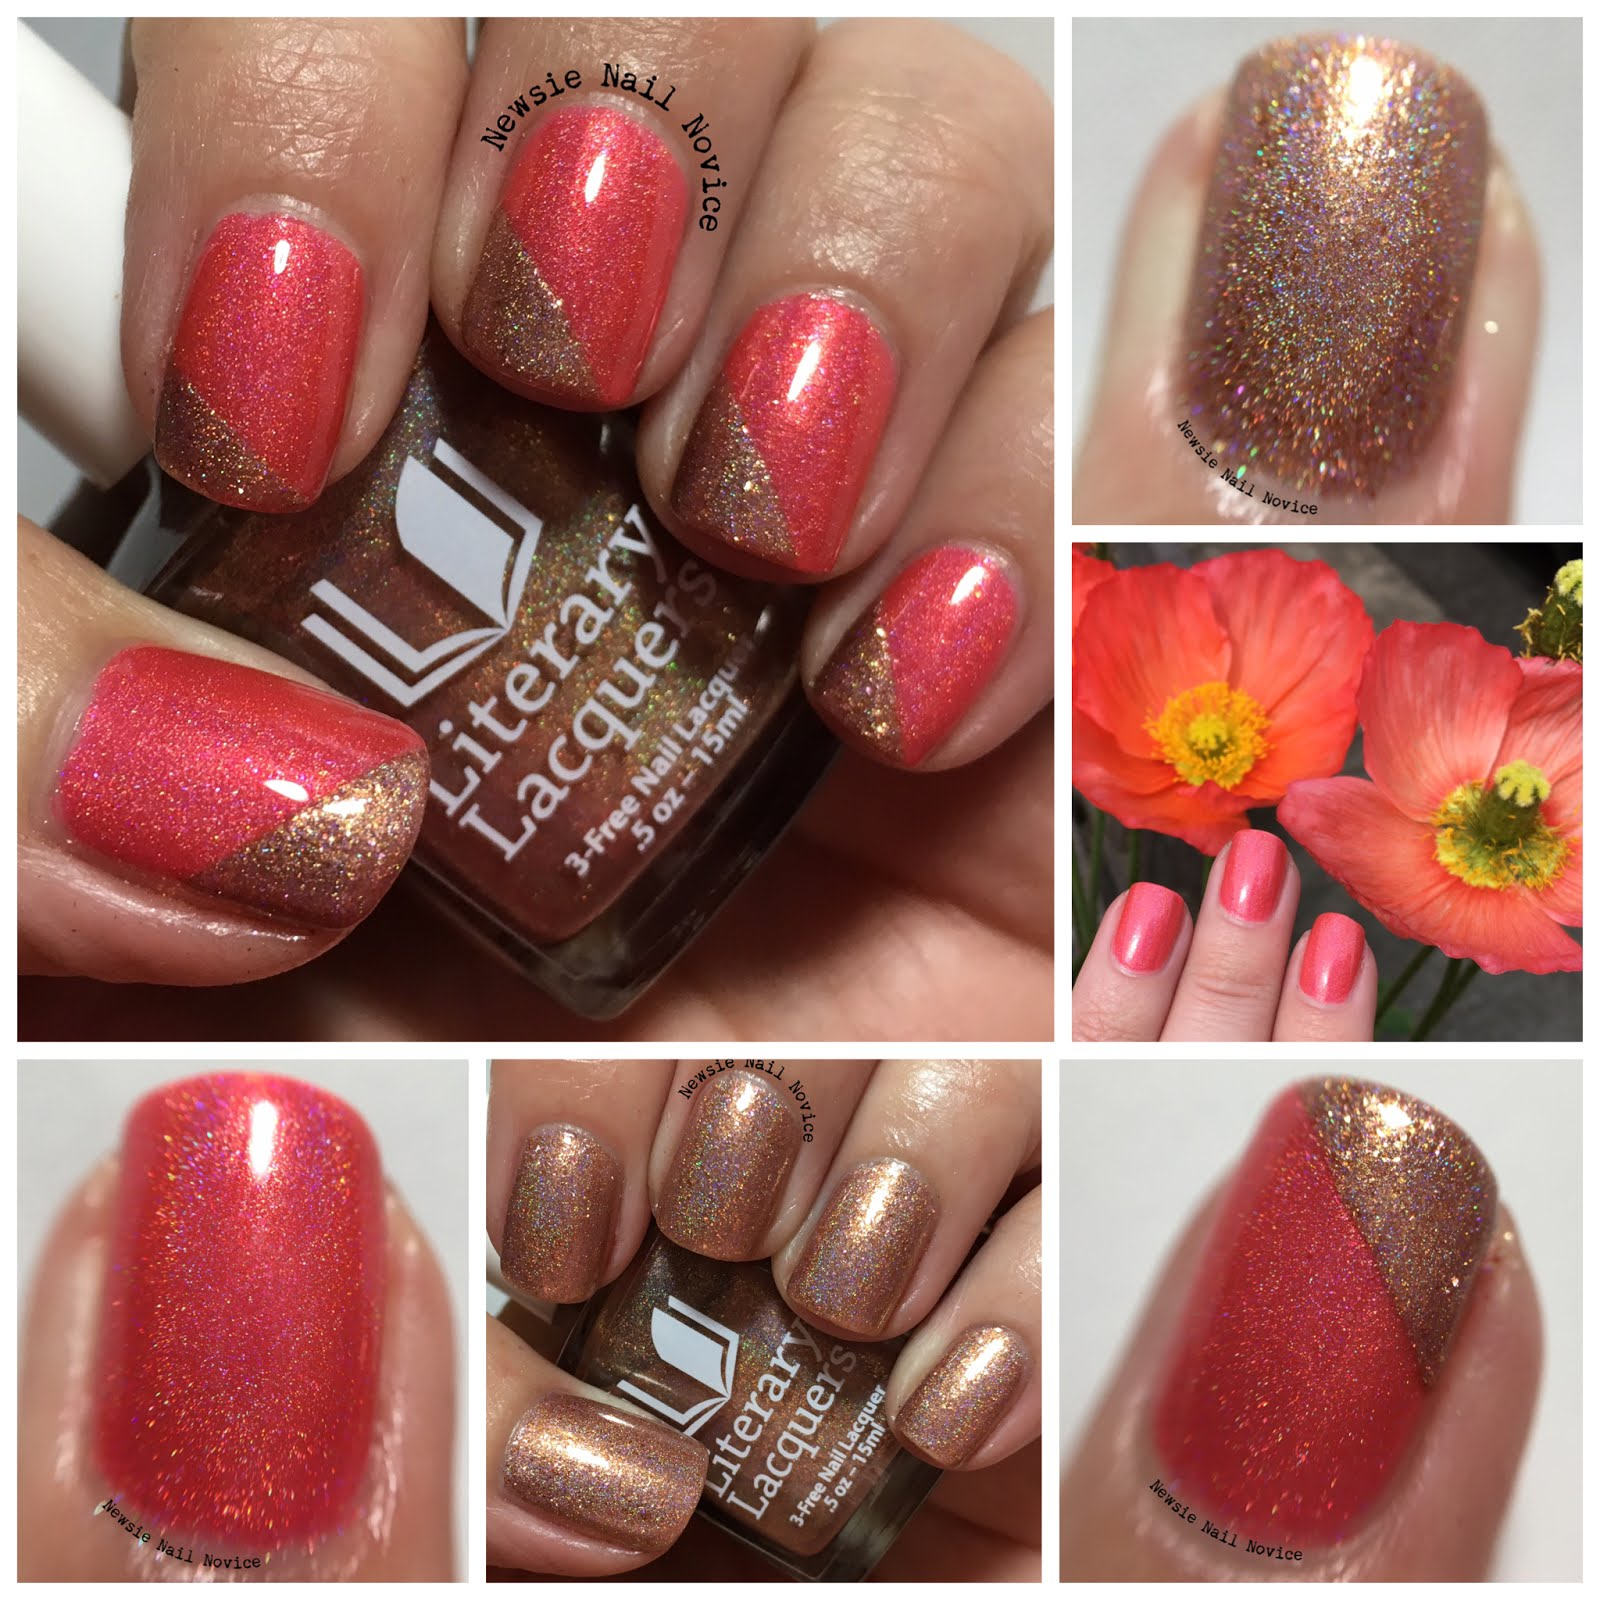 Literary Lacquers HHC and Charity Polish | Newsie Nail Novice